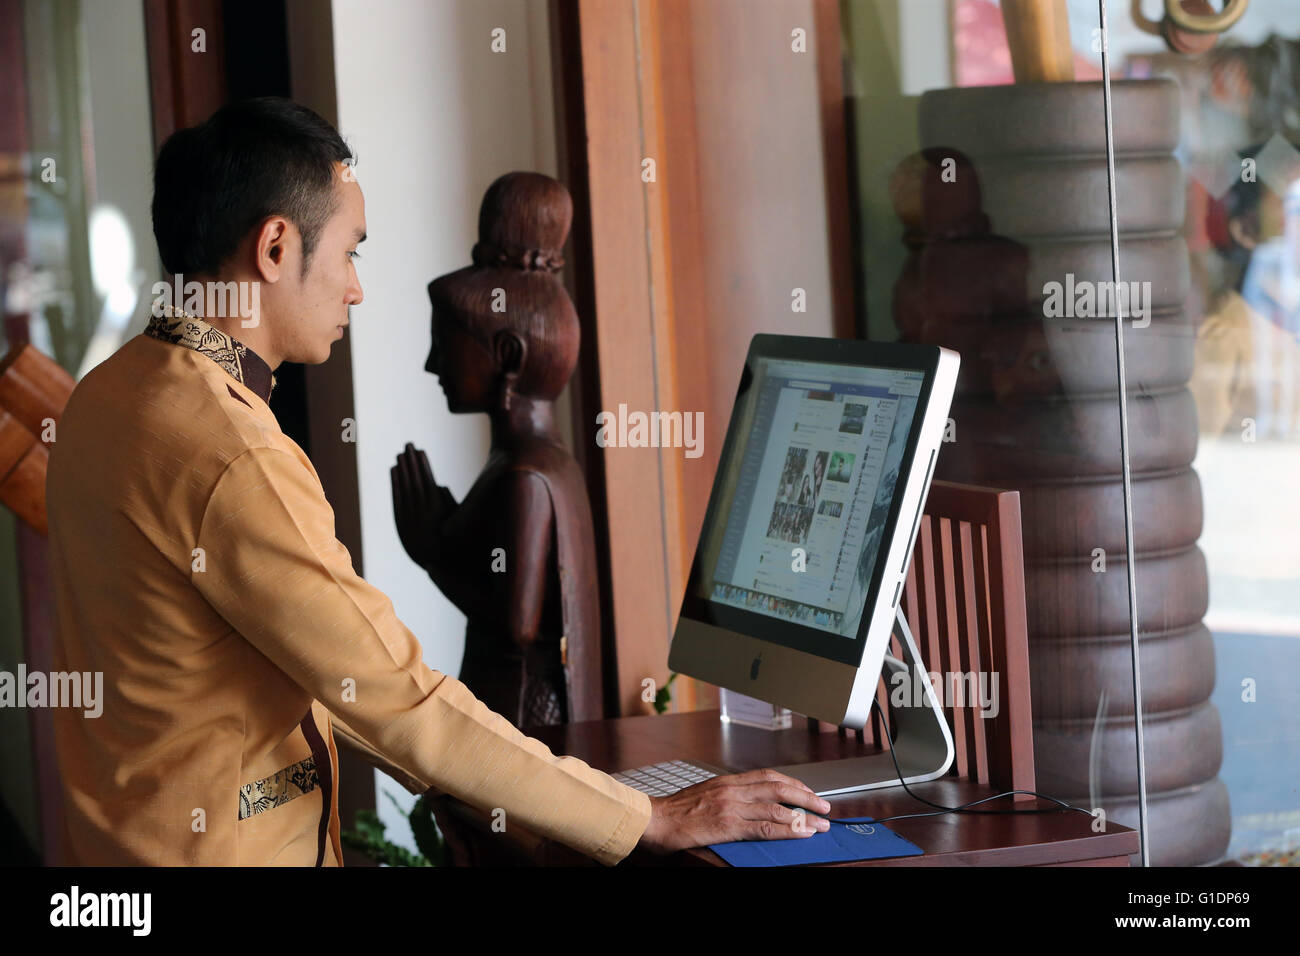 Man using Facebook on a computer.  Vientiane. Laos. - Stock Image